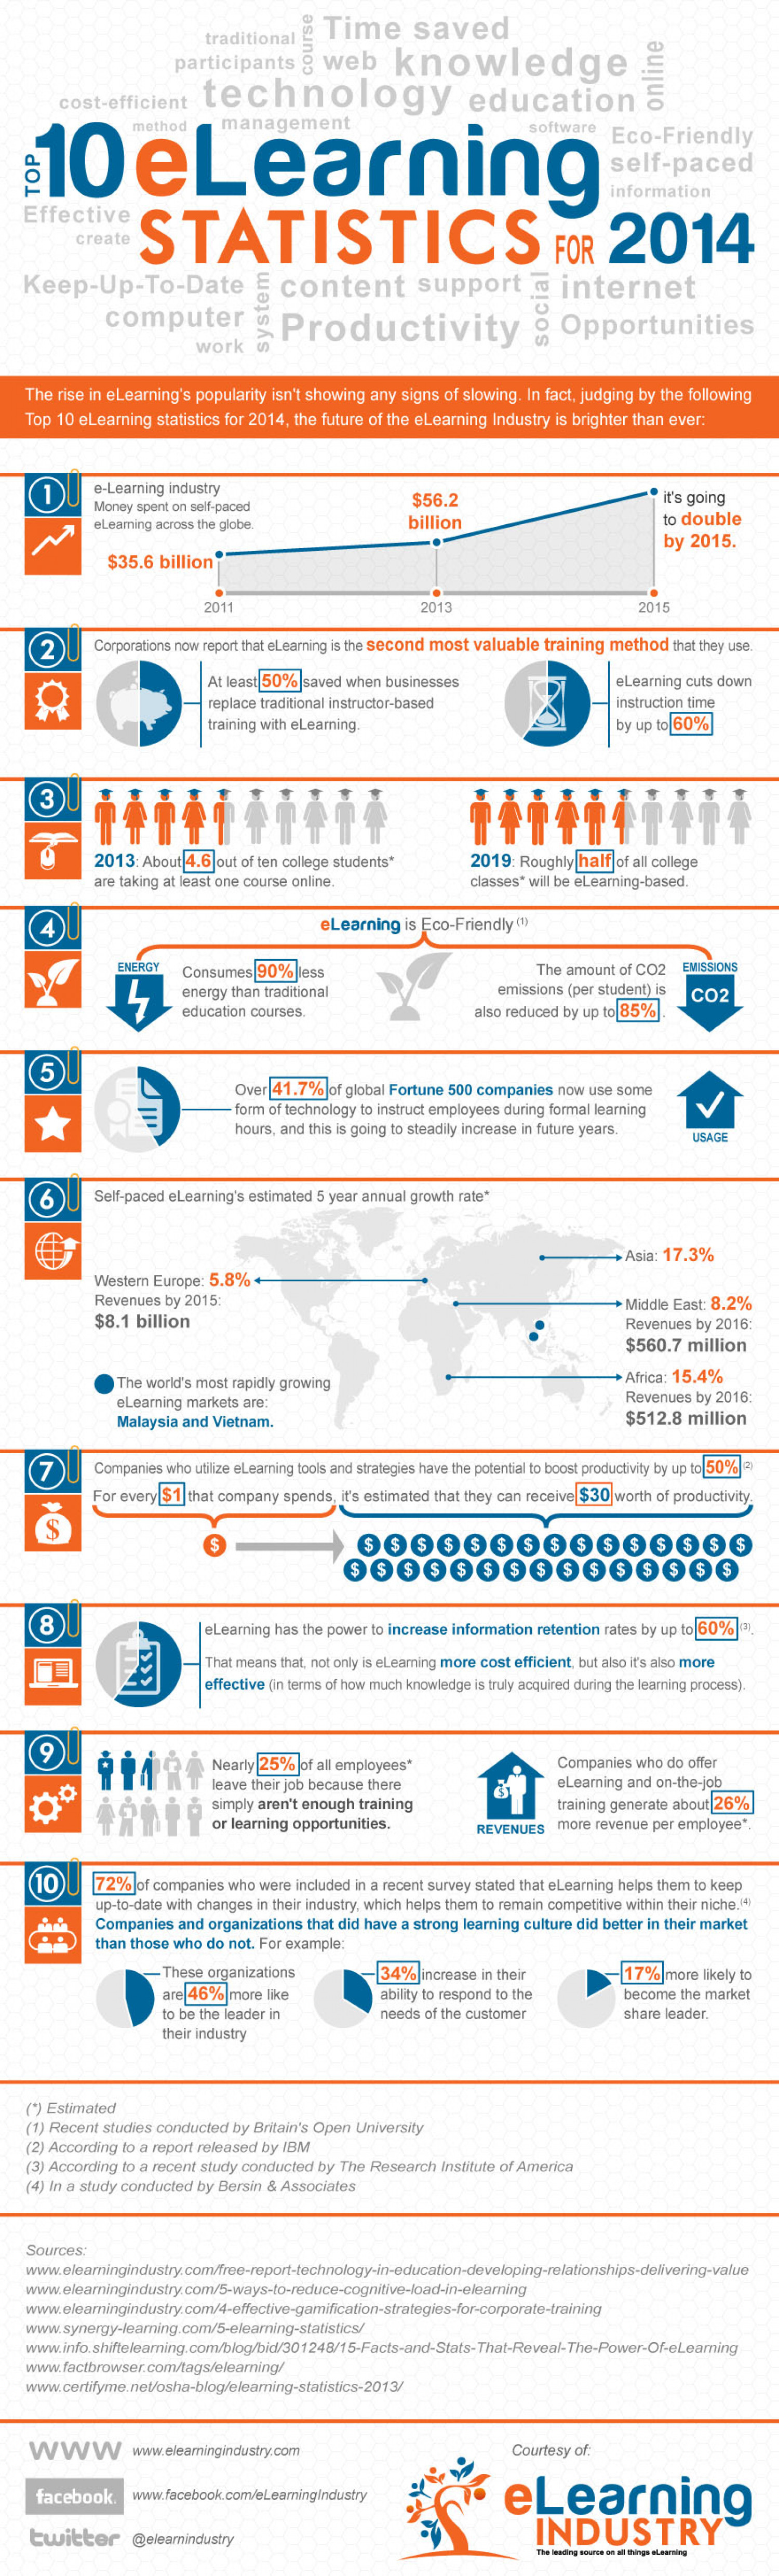 Top 10 e-Learning Statistics for 2014 Infographic